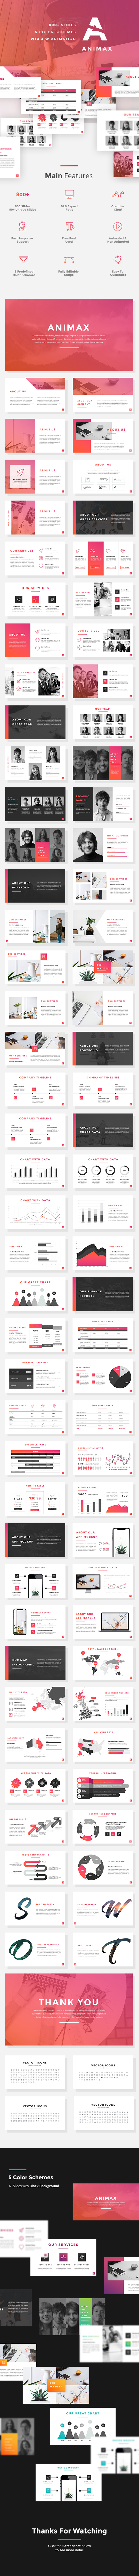 Animax - Finance and Marketing Google Slides Template - Google Slides Presentation Templates